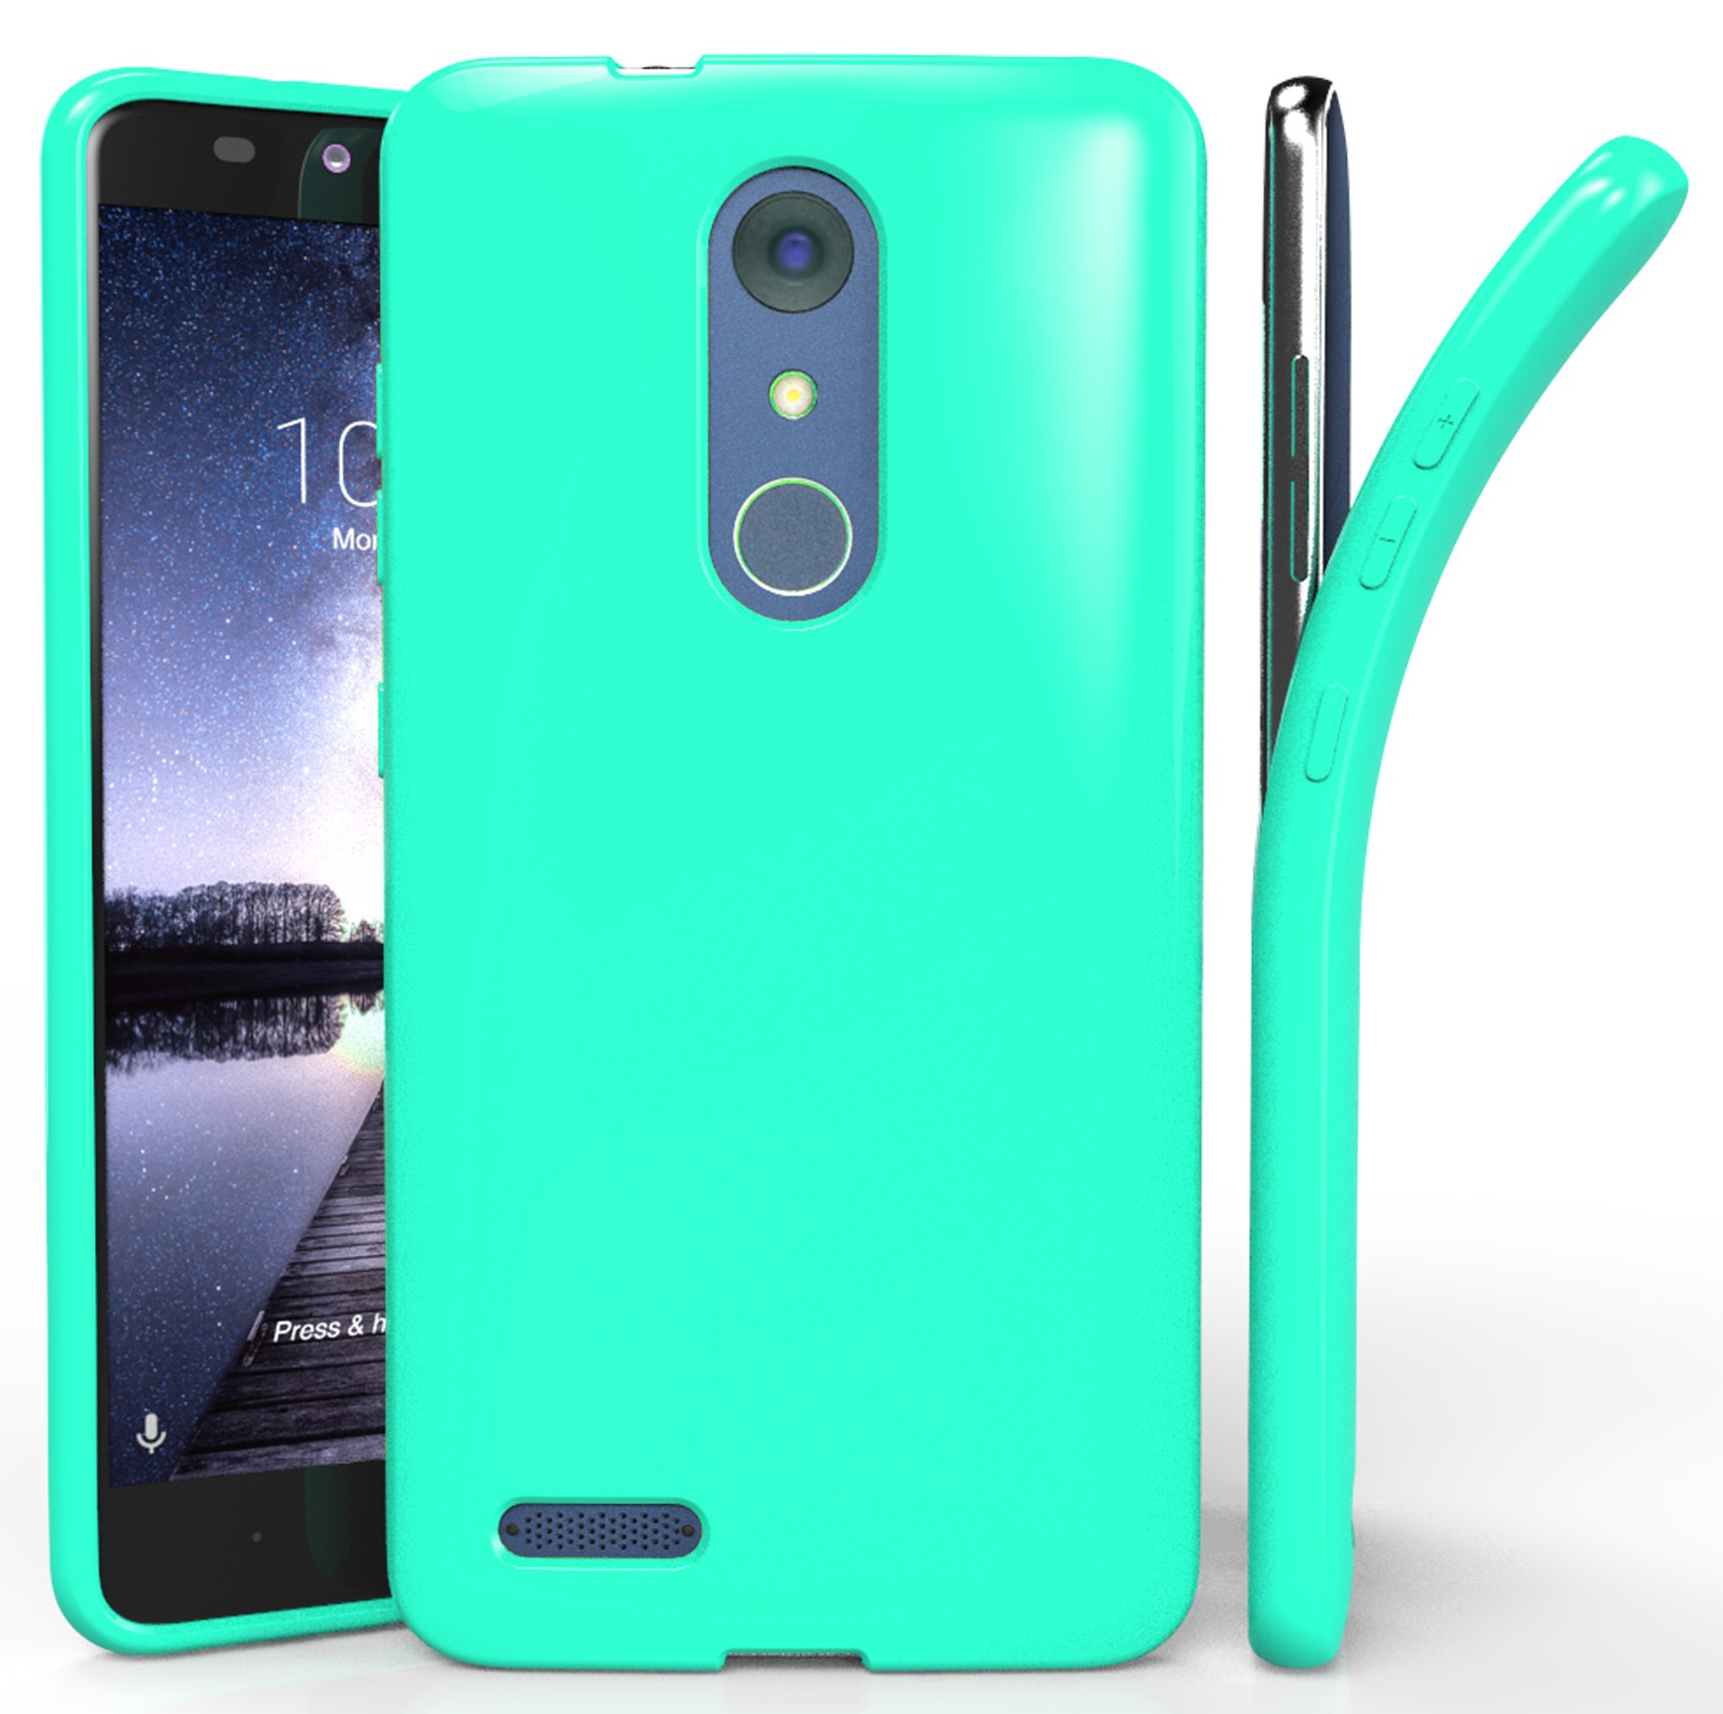 size 40 6bc54 dc250 ZTE ZMAX PRO CASE, NEW FLEX GEL TPU SKIN CASE COVER FOR ZTE ZMAX PRO Z981  (METROPCS, T-MOBILE)